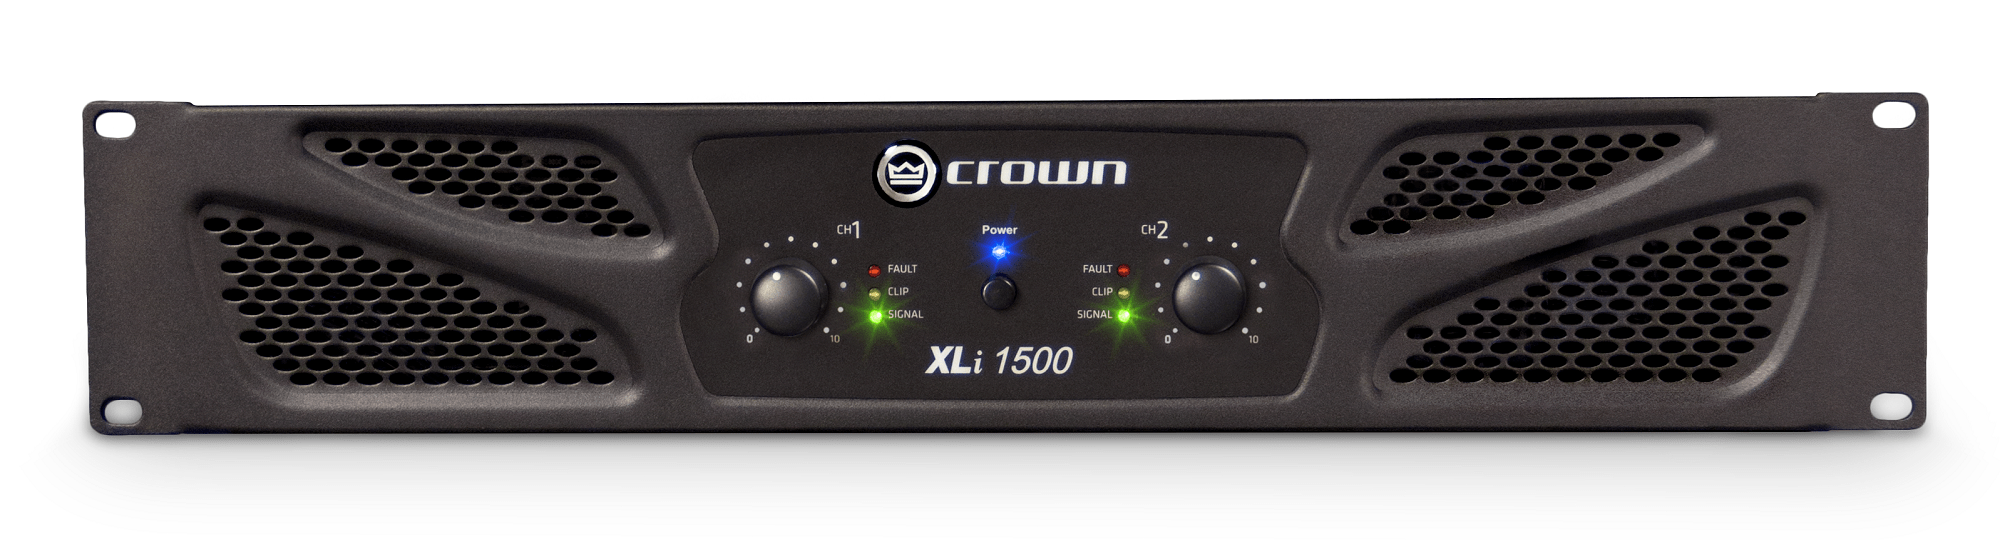 Power Ampli Karaoke Crown XLi1500 | Anh Duy Audio